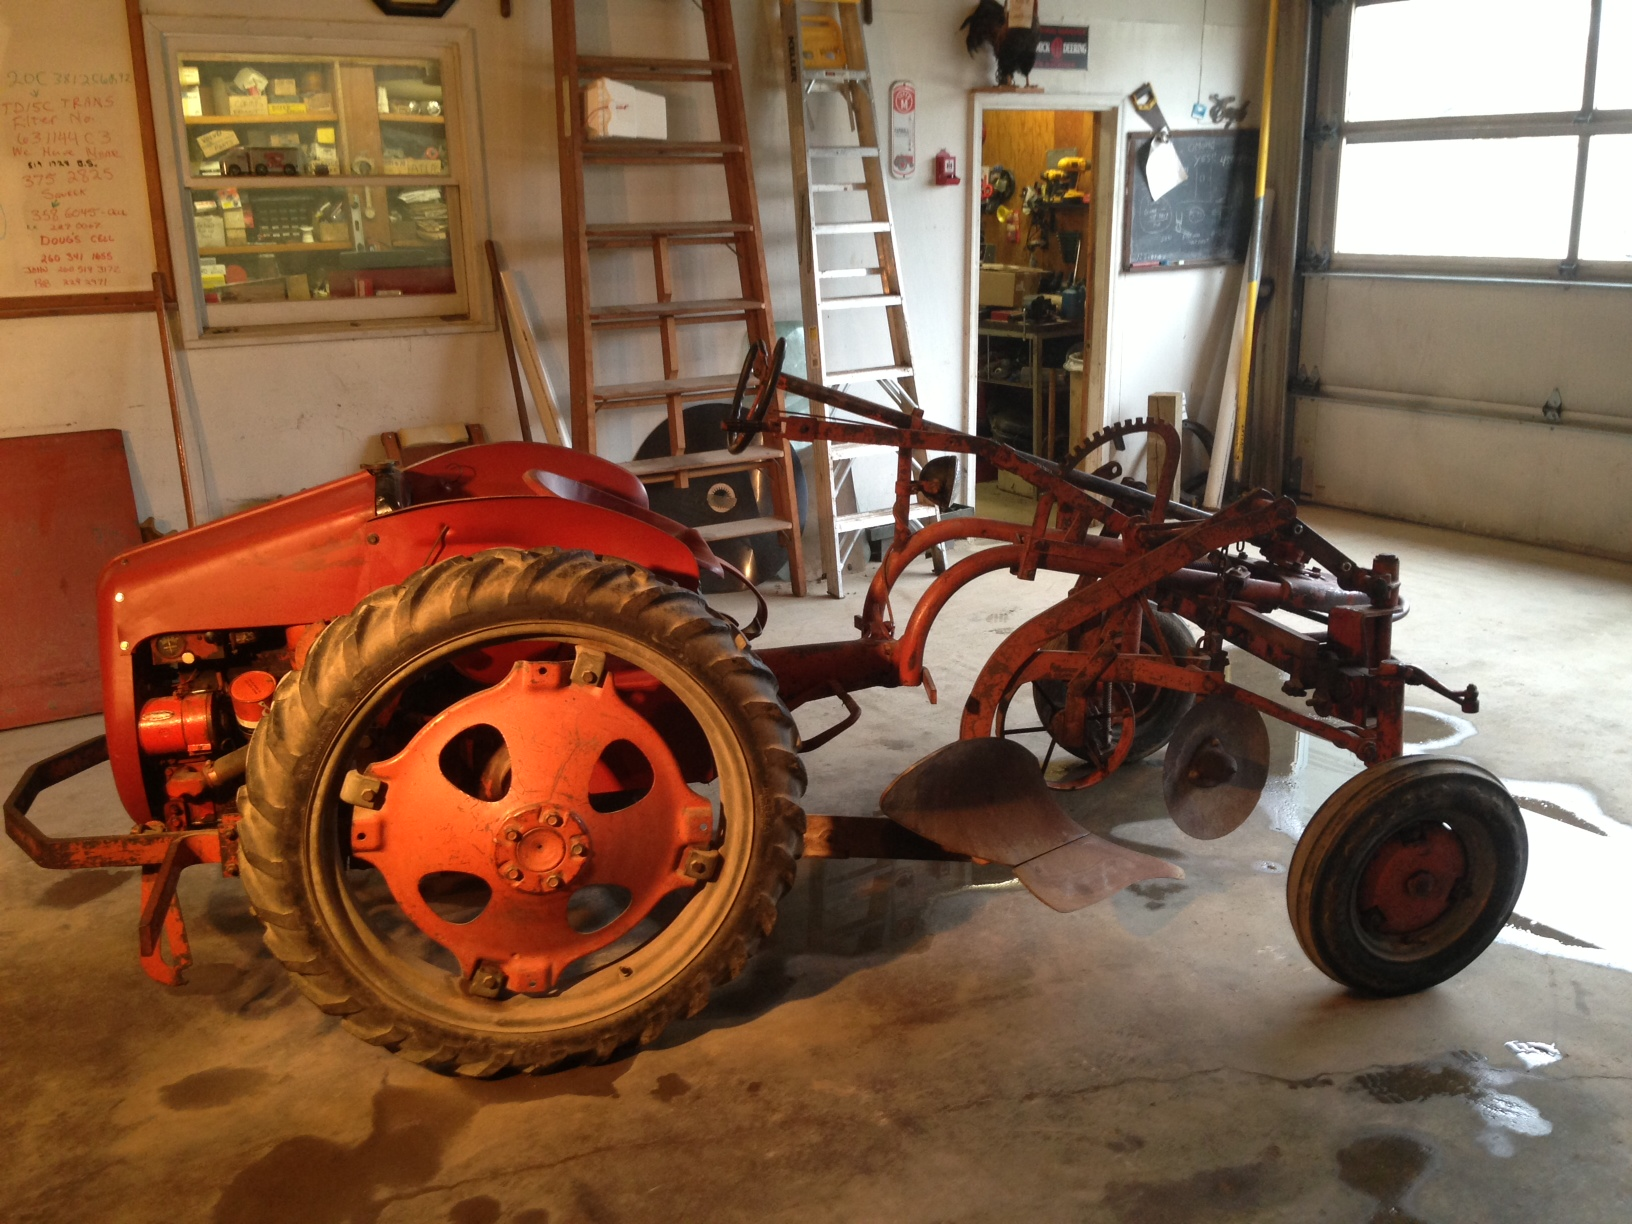 Allis Chalmers D21 Craigslist Related Keywords & Suggestions - Allis